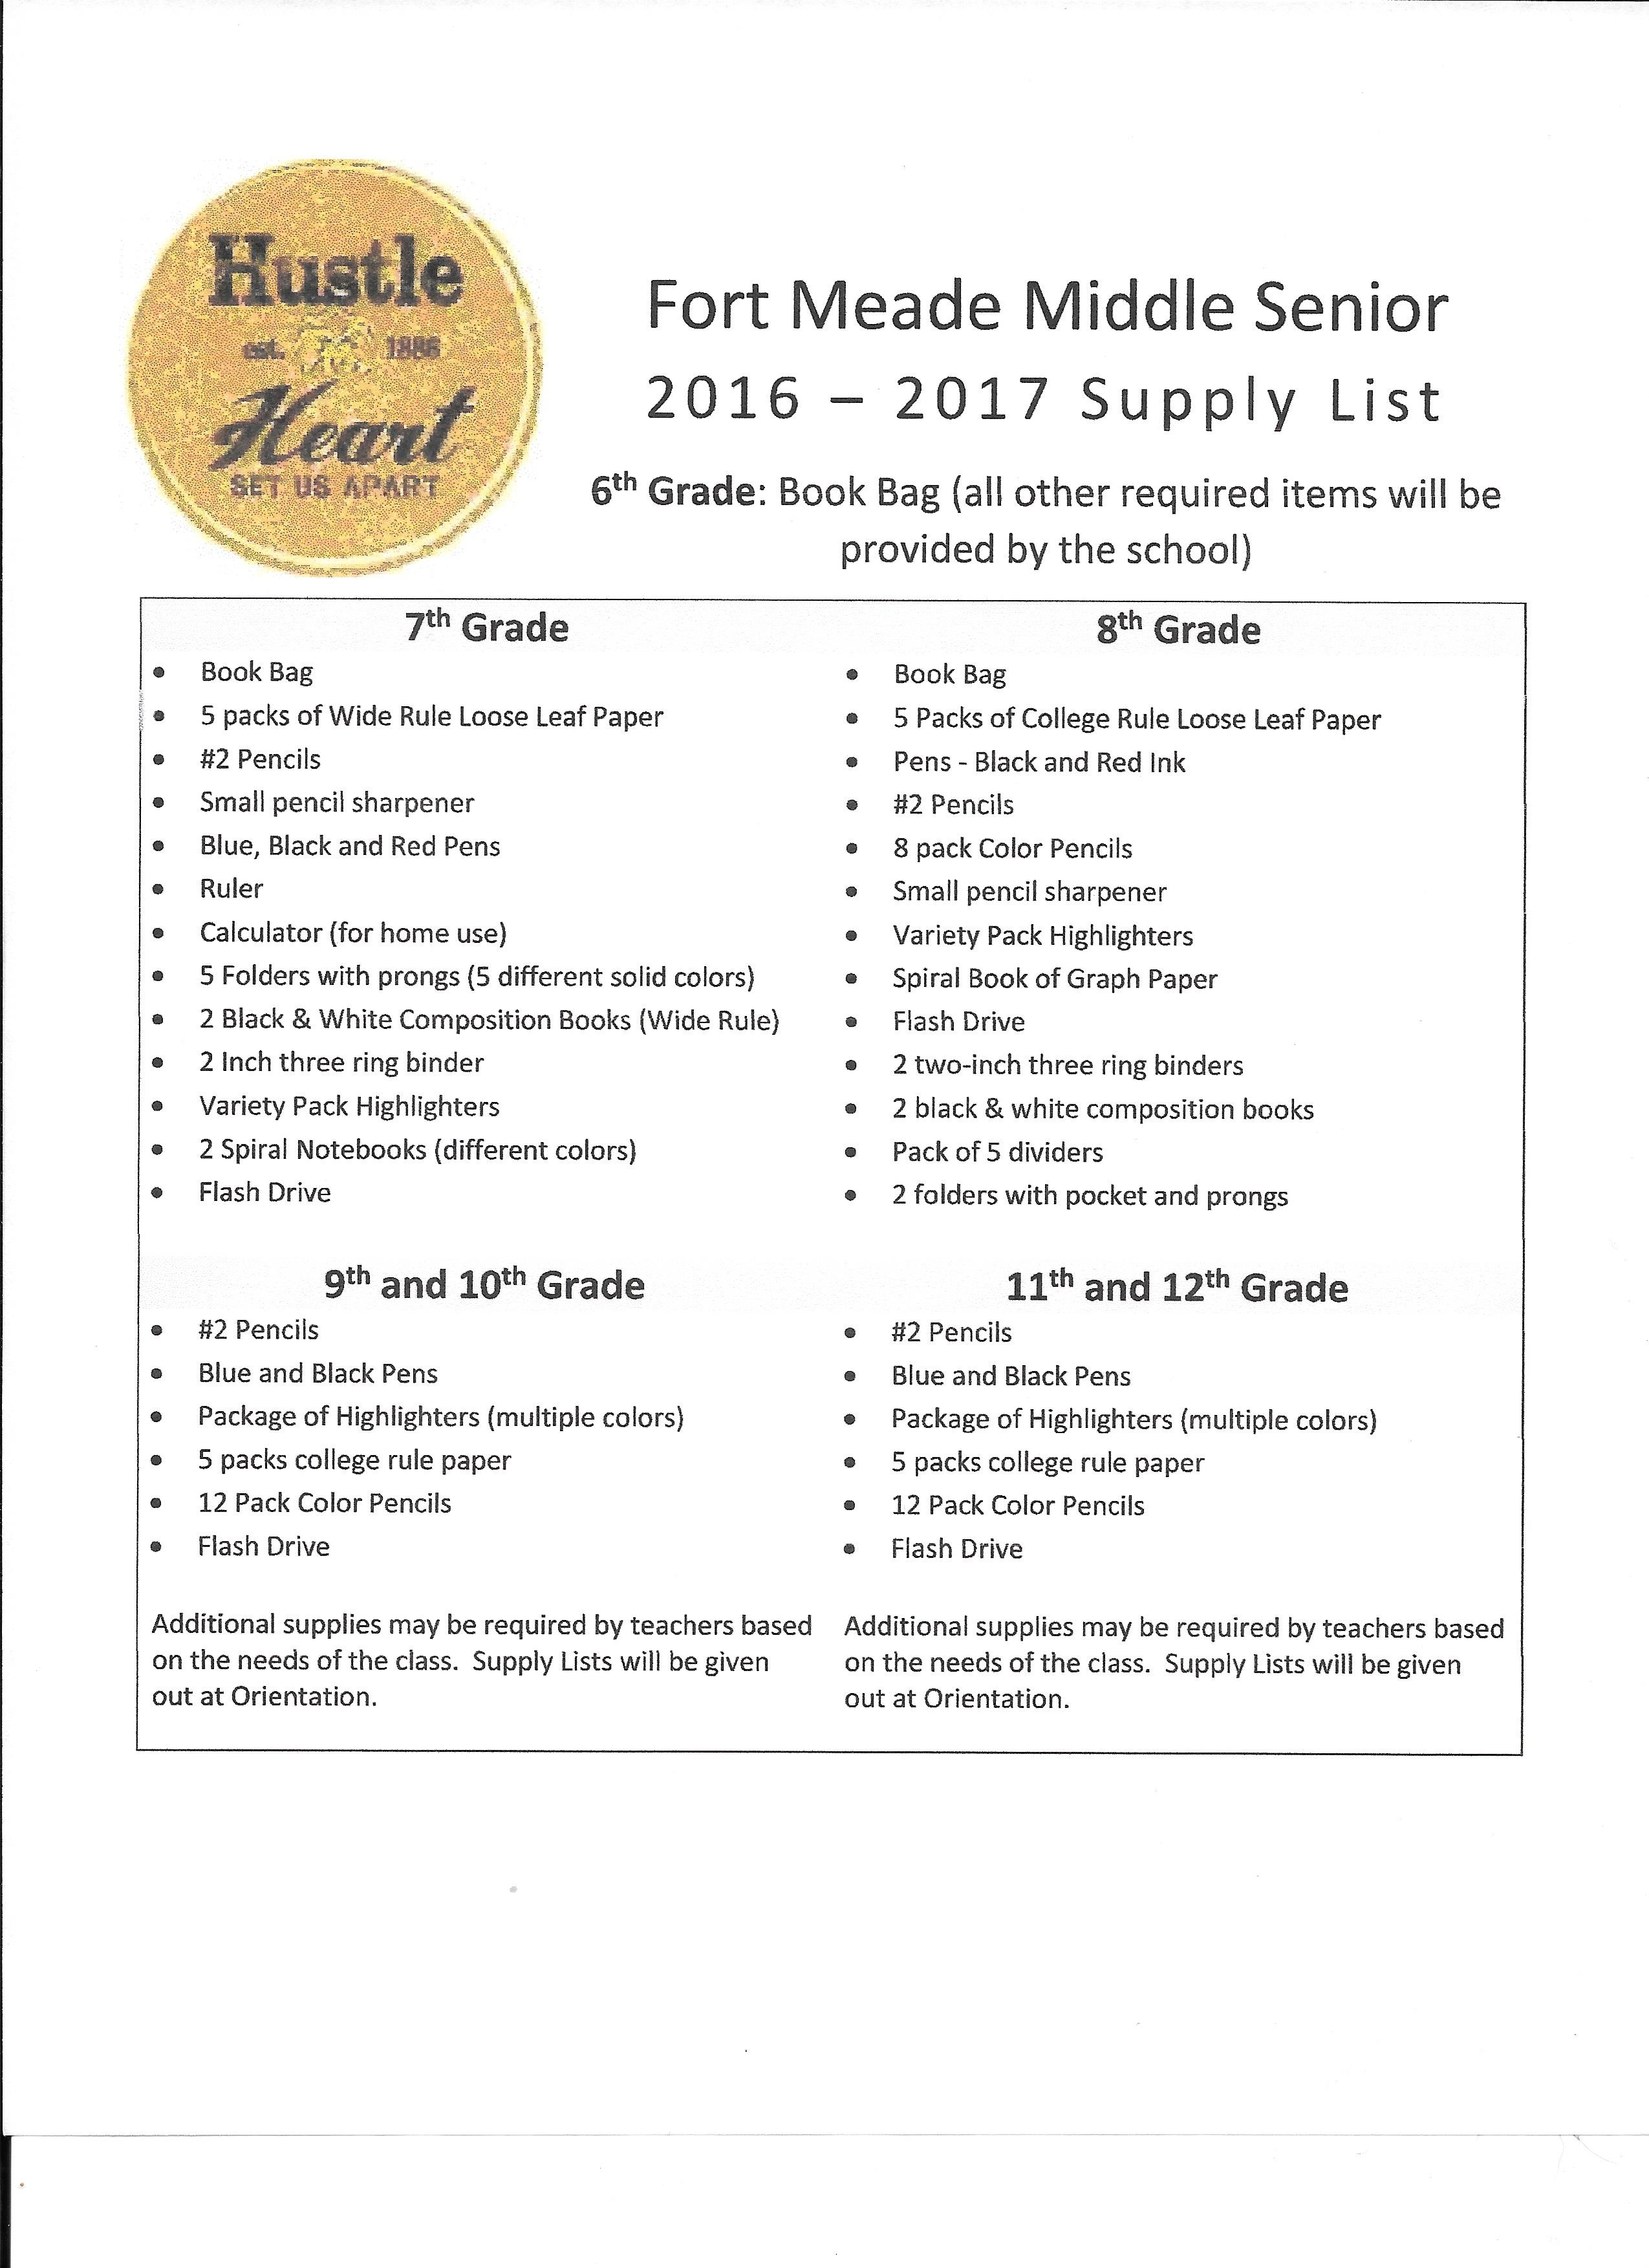 2016 / 2017 Fort Meade Middle Senior School Supply List – Ft  Meade